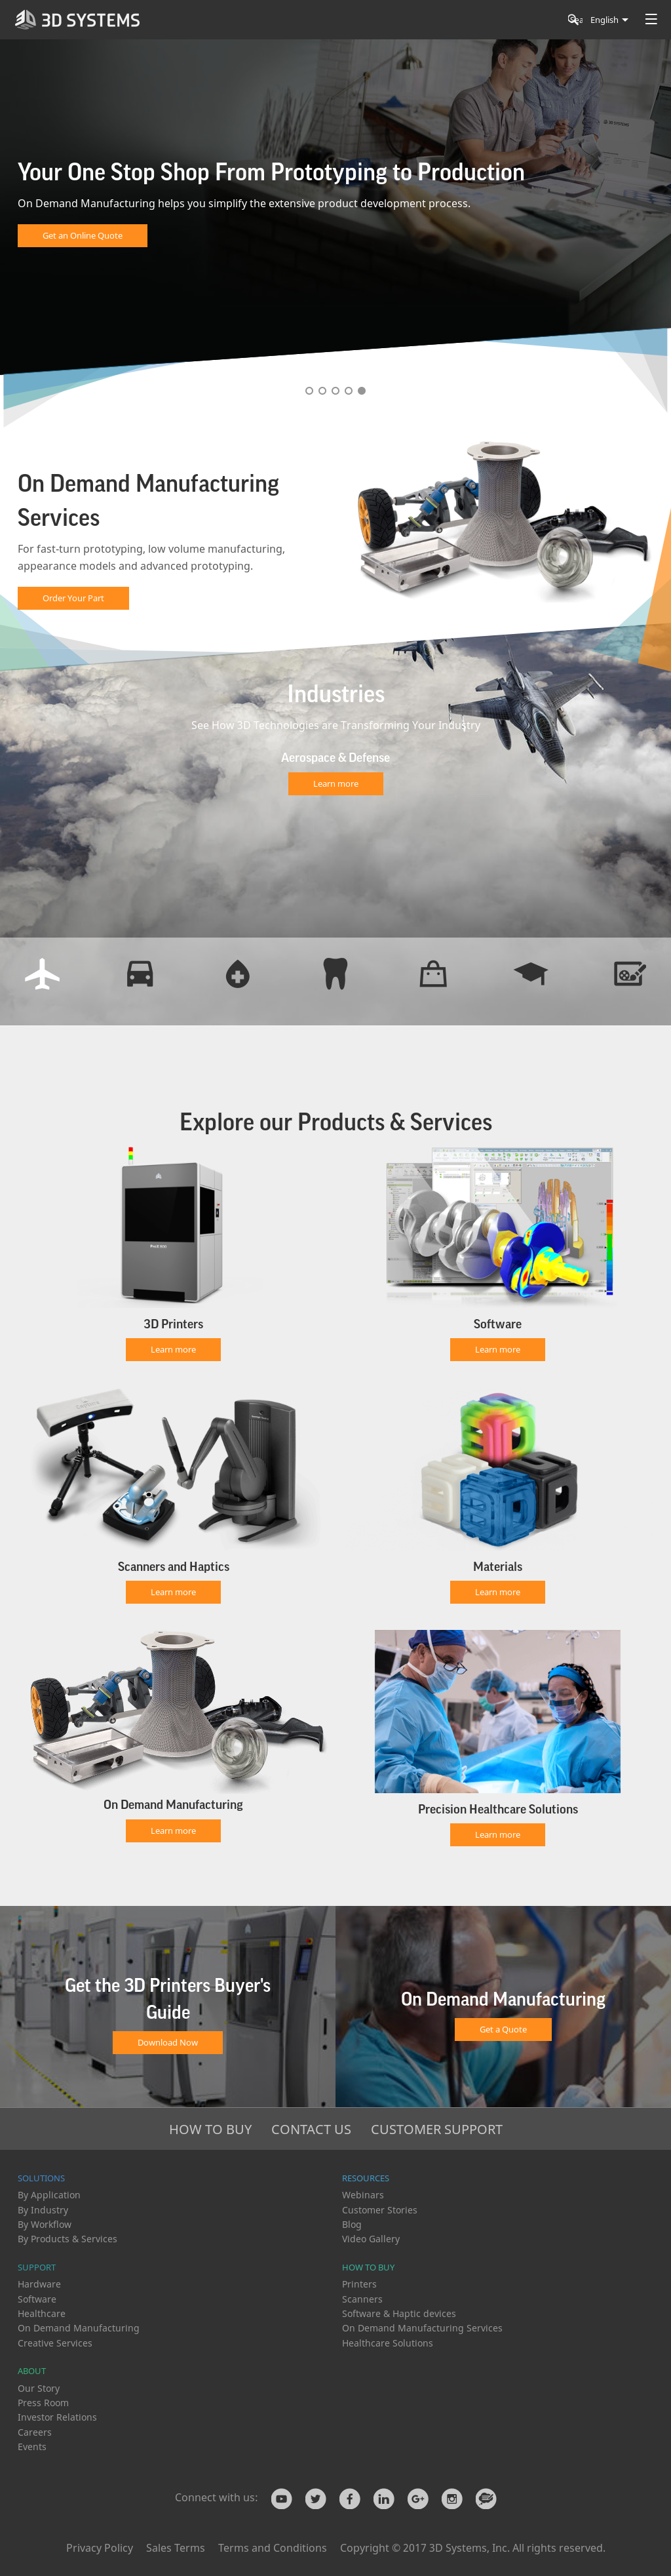 3D Systems Competitors, Revenue and Employees - Owler